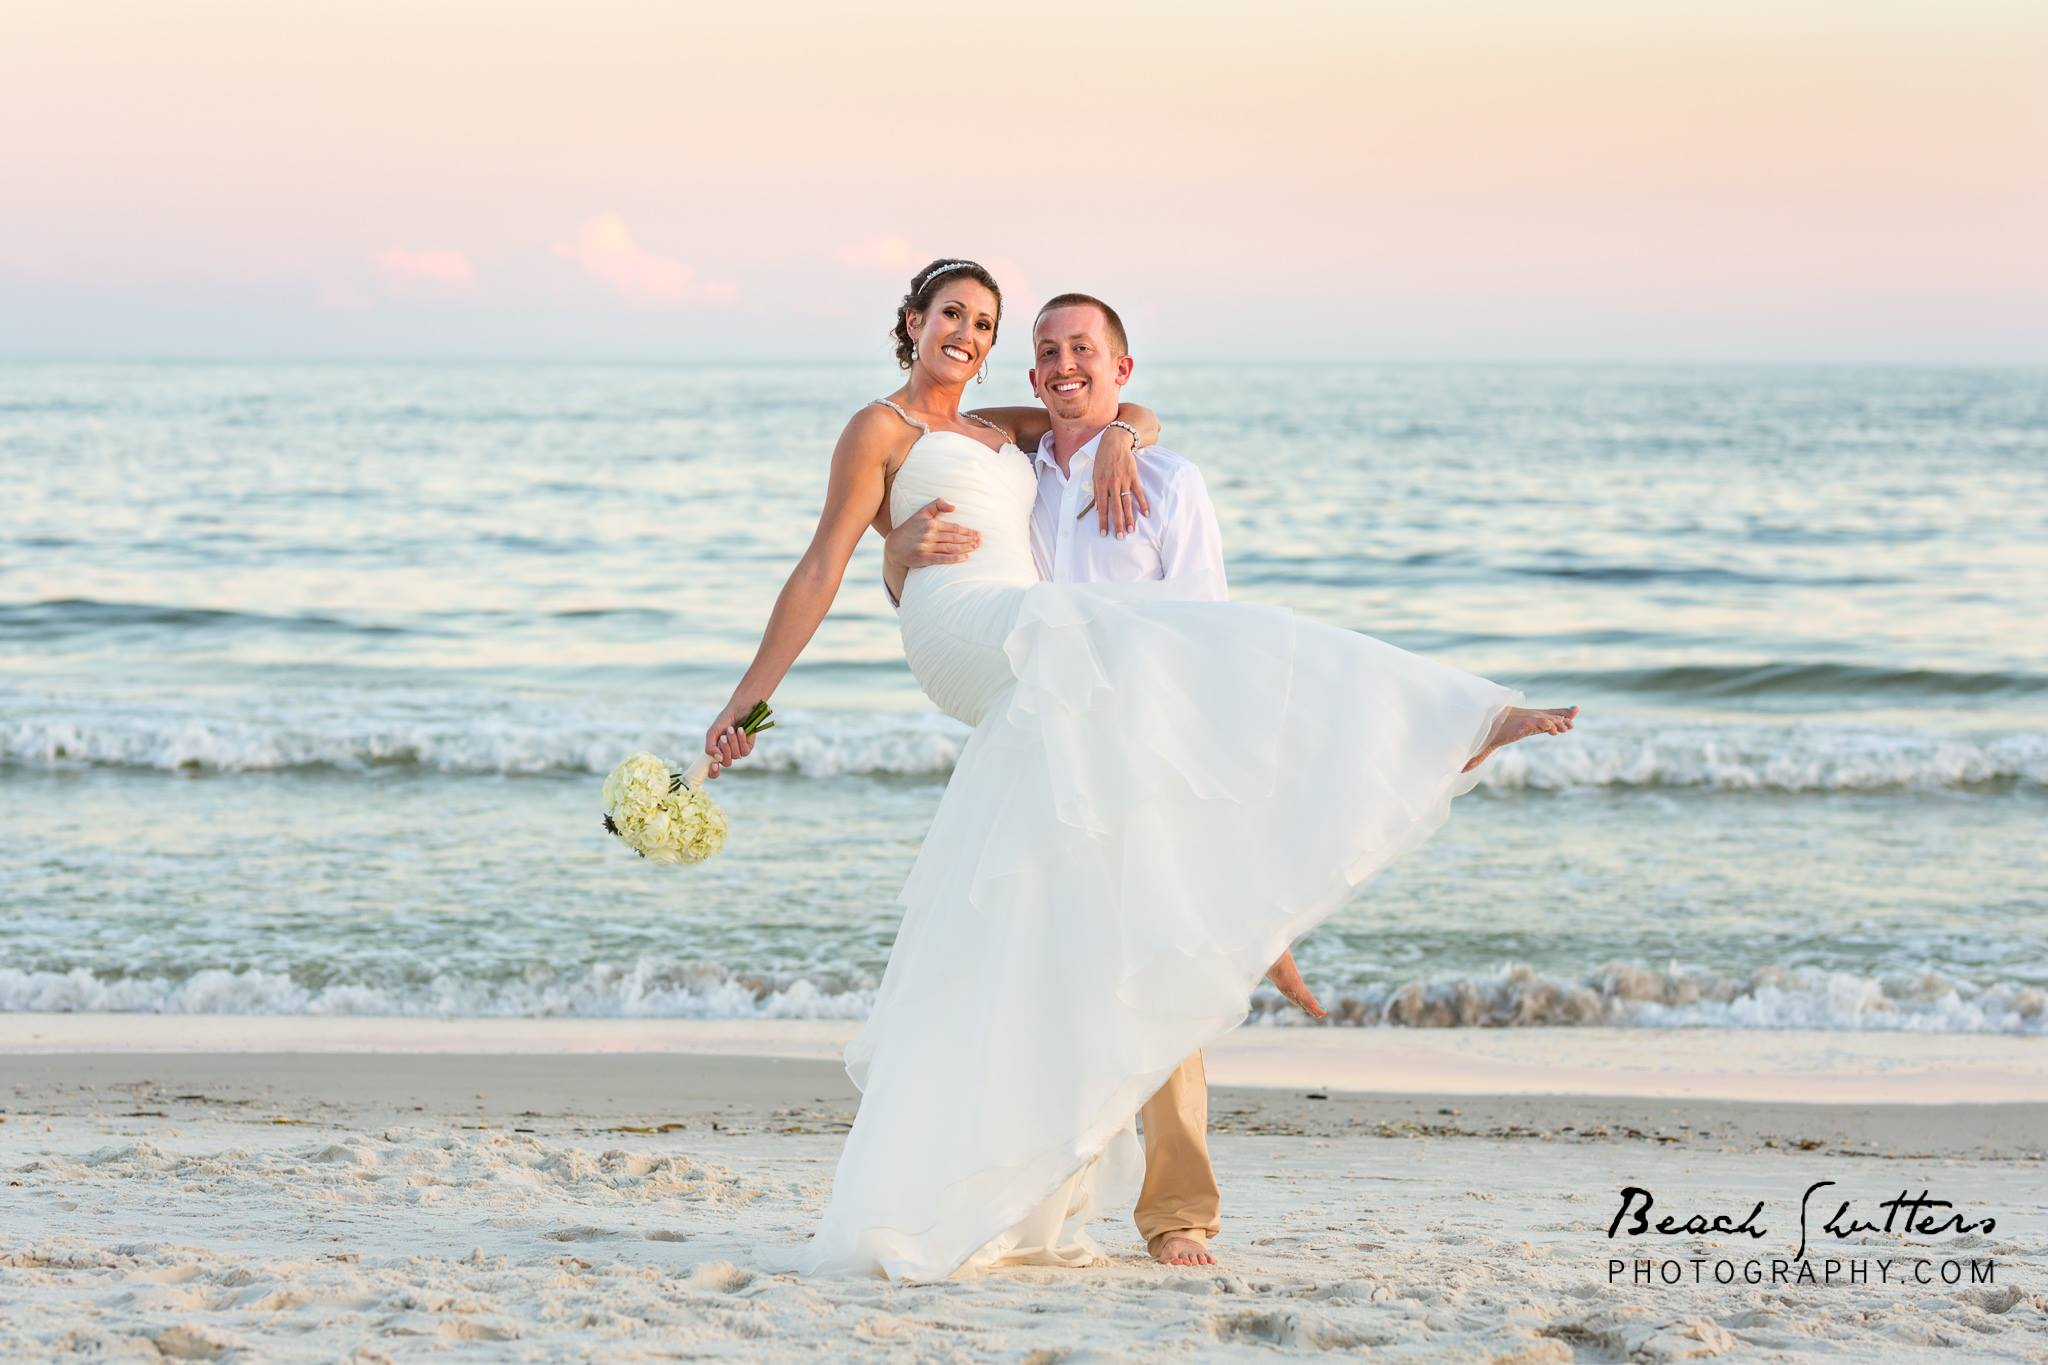 Wedding Photo of a bride and groom at the waters edege